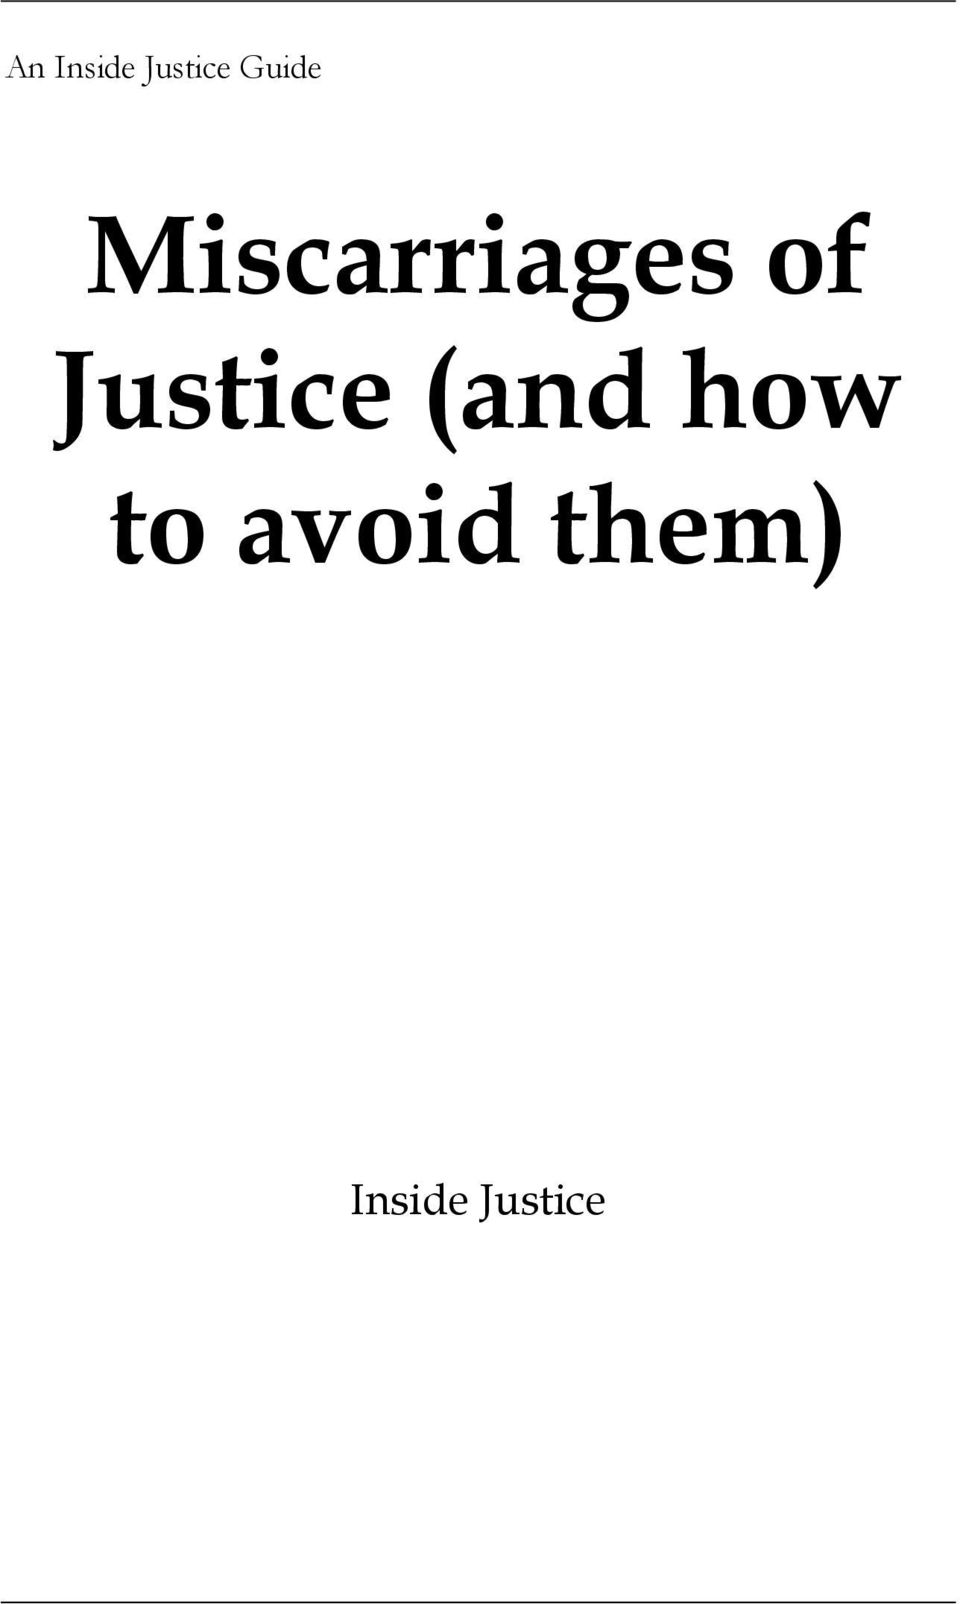 Justice (and how to